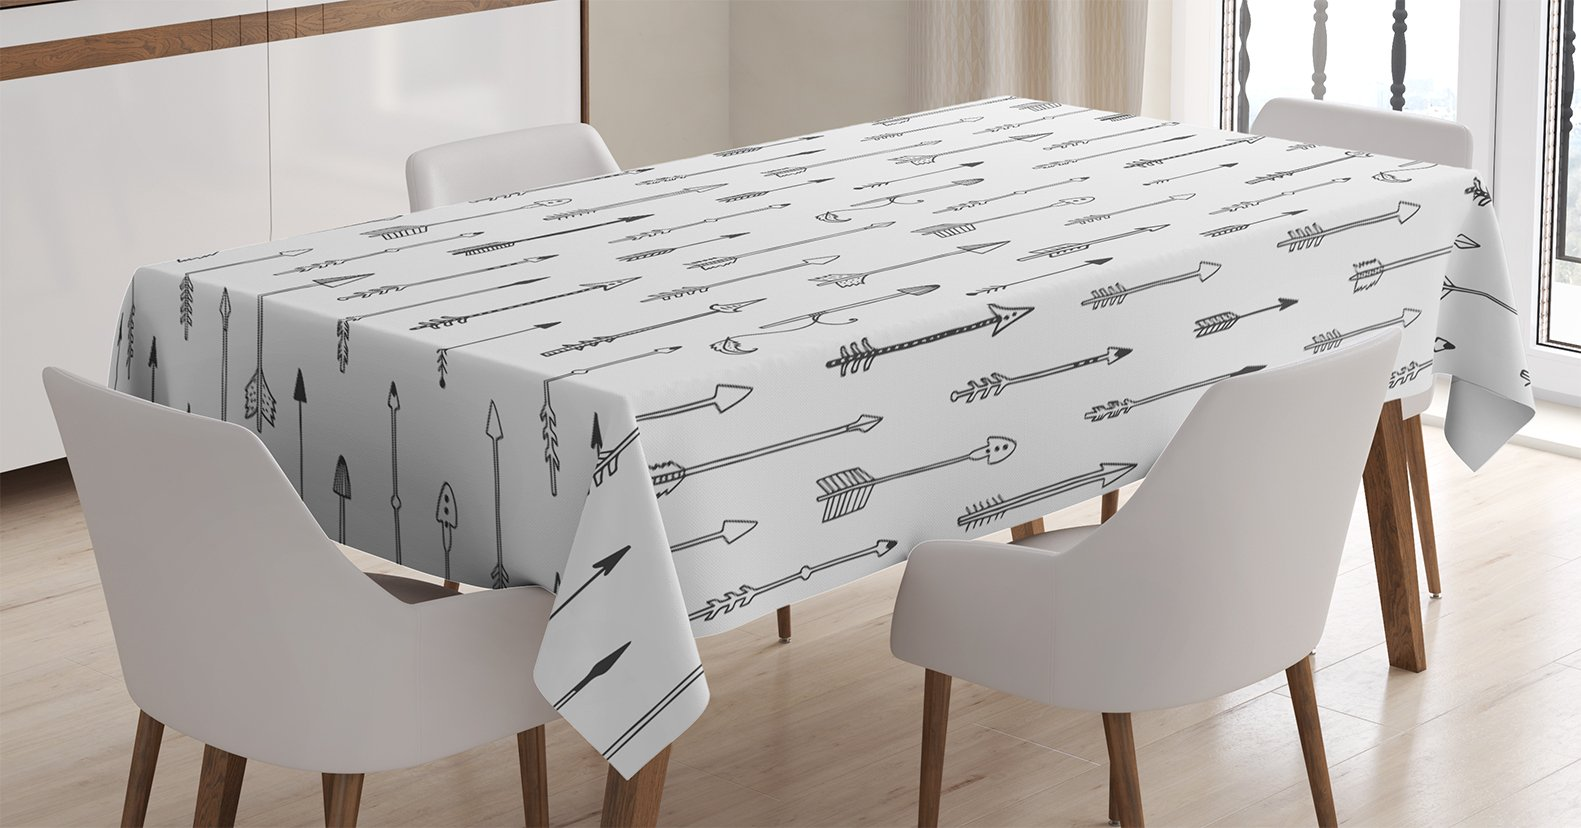 Ambesonne Arrow Tablecloth, Nostalgic Motifs Contemporary Graphic of Retro Native Arrows Culture, Dining Room Kitchen Rectangular Table Cover, 60 W X 90 L Inches, Charcoal Grey - 60 INCHES WIDE x 90 INCHES LONG - Highly unique. Versatile. FUN. MACHINE WASHABLE - Cold cycle. Easy to clean. Durable enough for both indoor and outdoor use. MADE FROM - High quality 100% polyester woven silky satin fabric with hand-sewn finished edges - tablecloths, kitchen-dining-room-table-linens, kitchen-dining-room - 71TC RMdb1L -